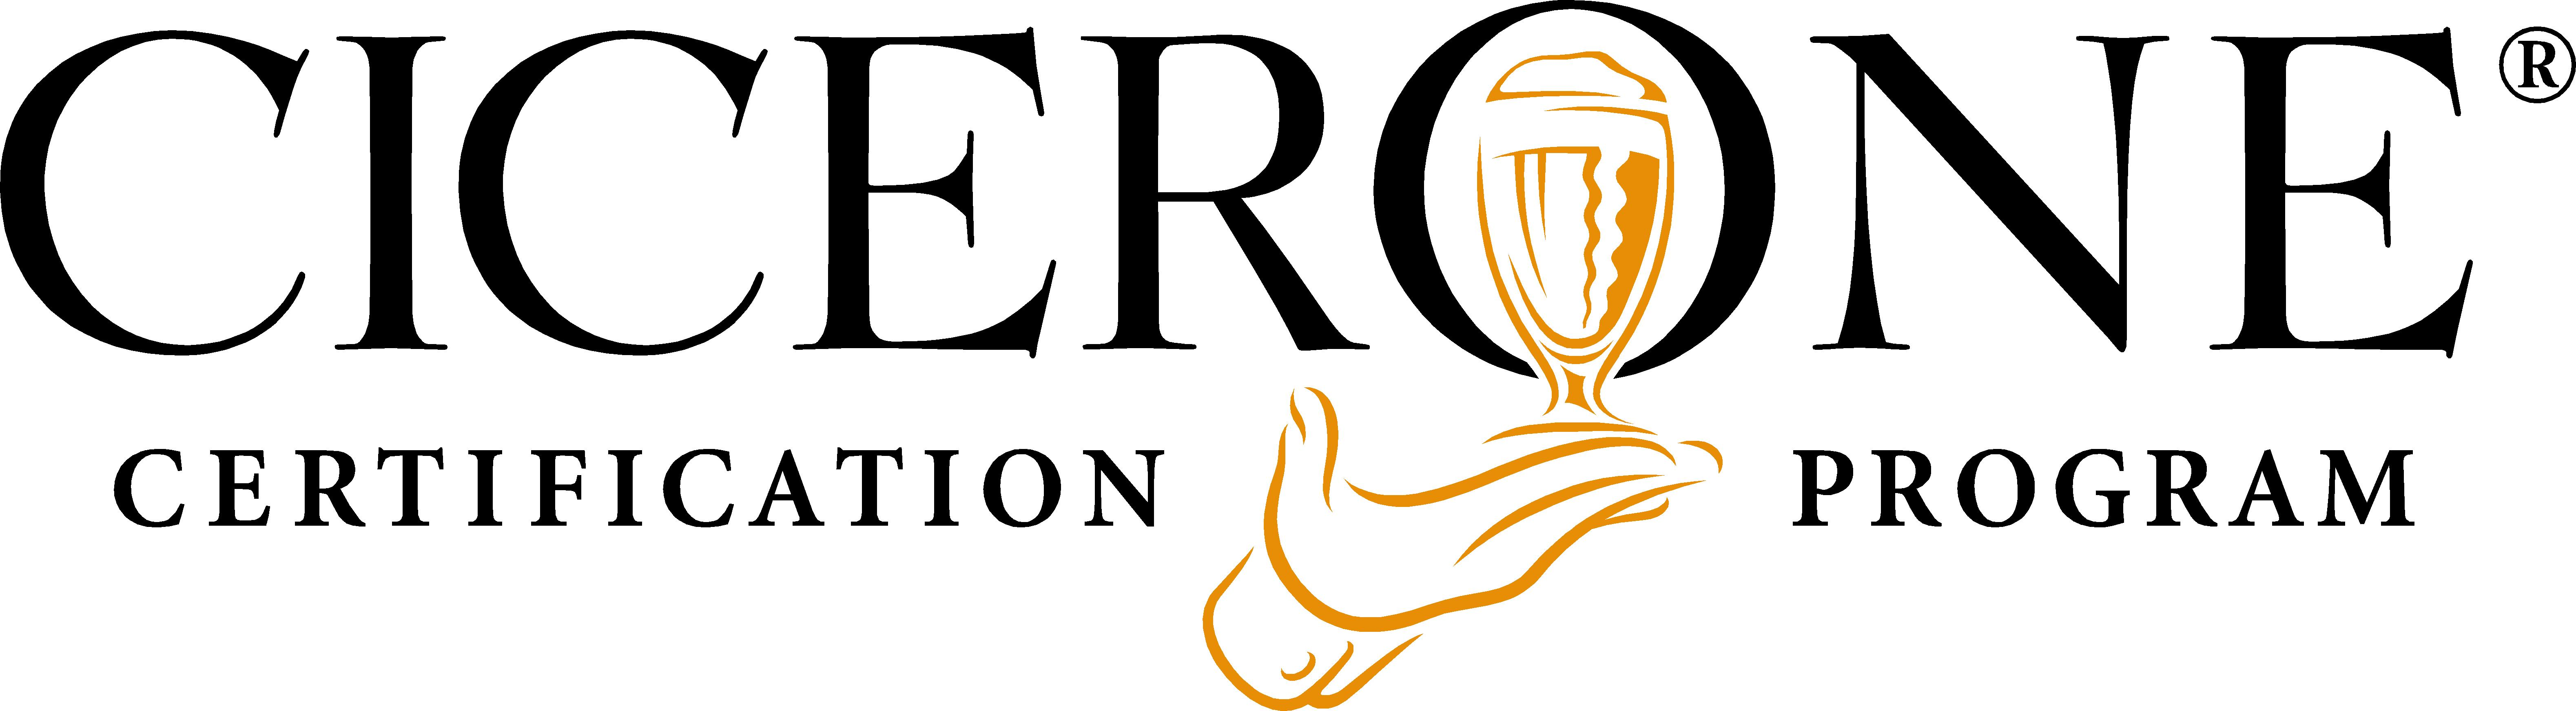 cicerone certification program beer certified advanced level officially launches canada exam programs exams announces results server tailored announced fully launch